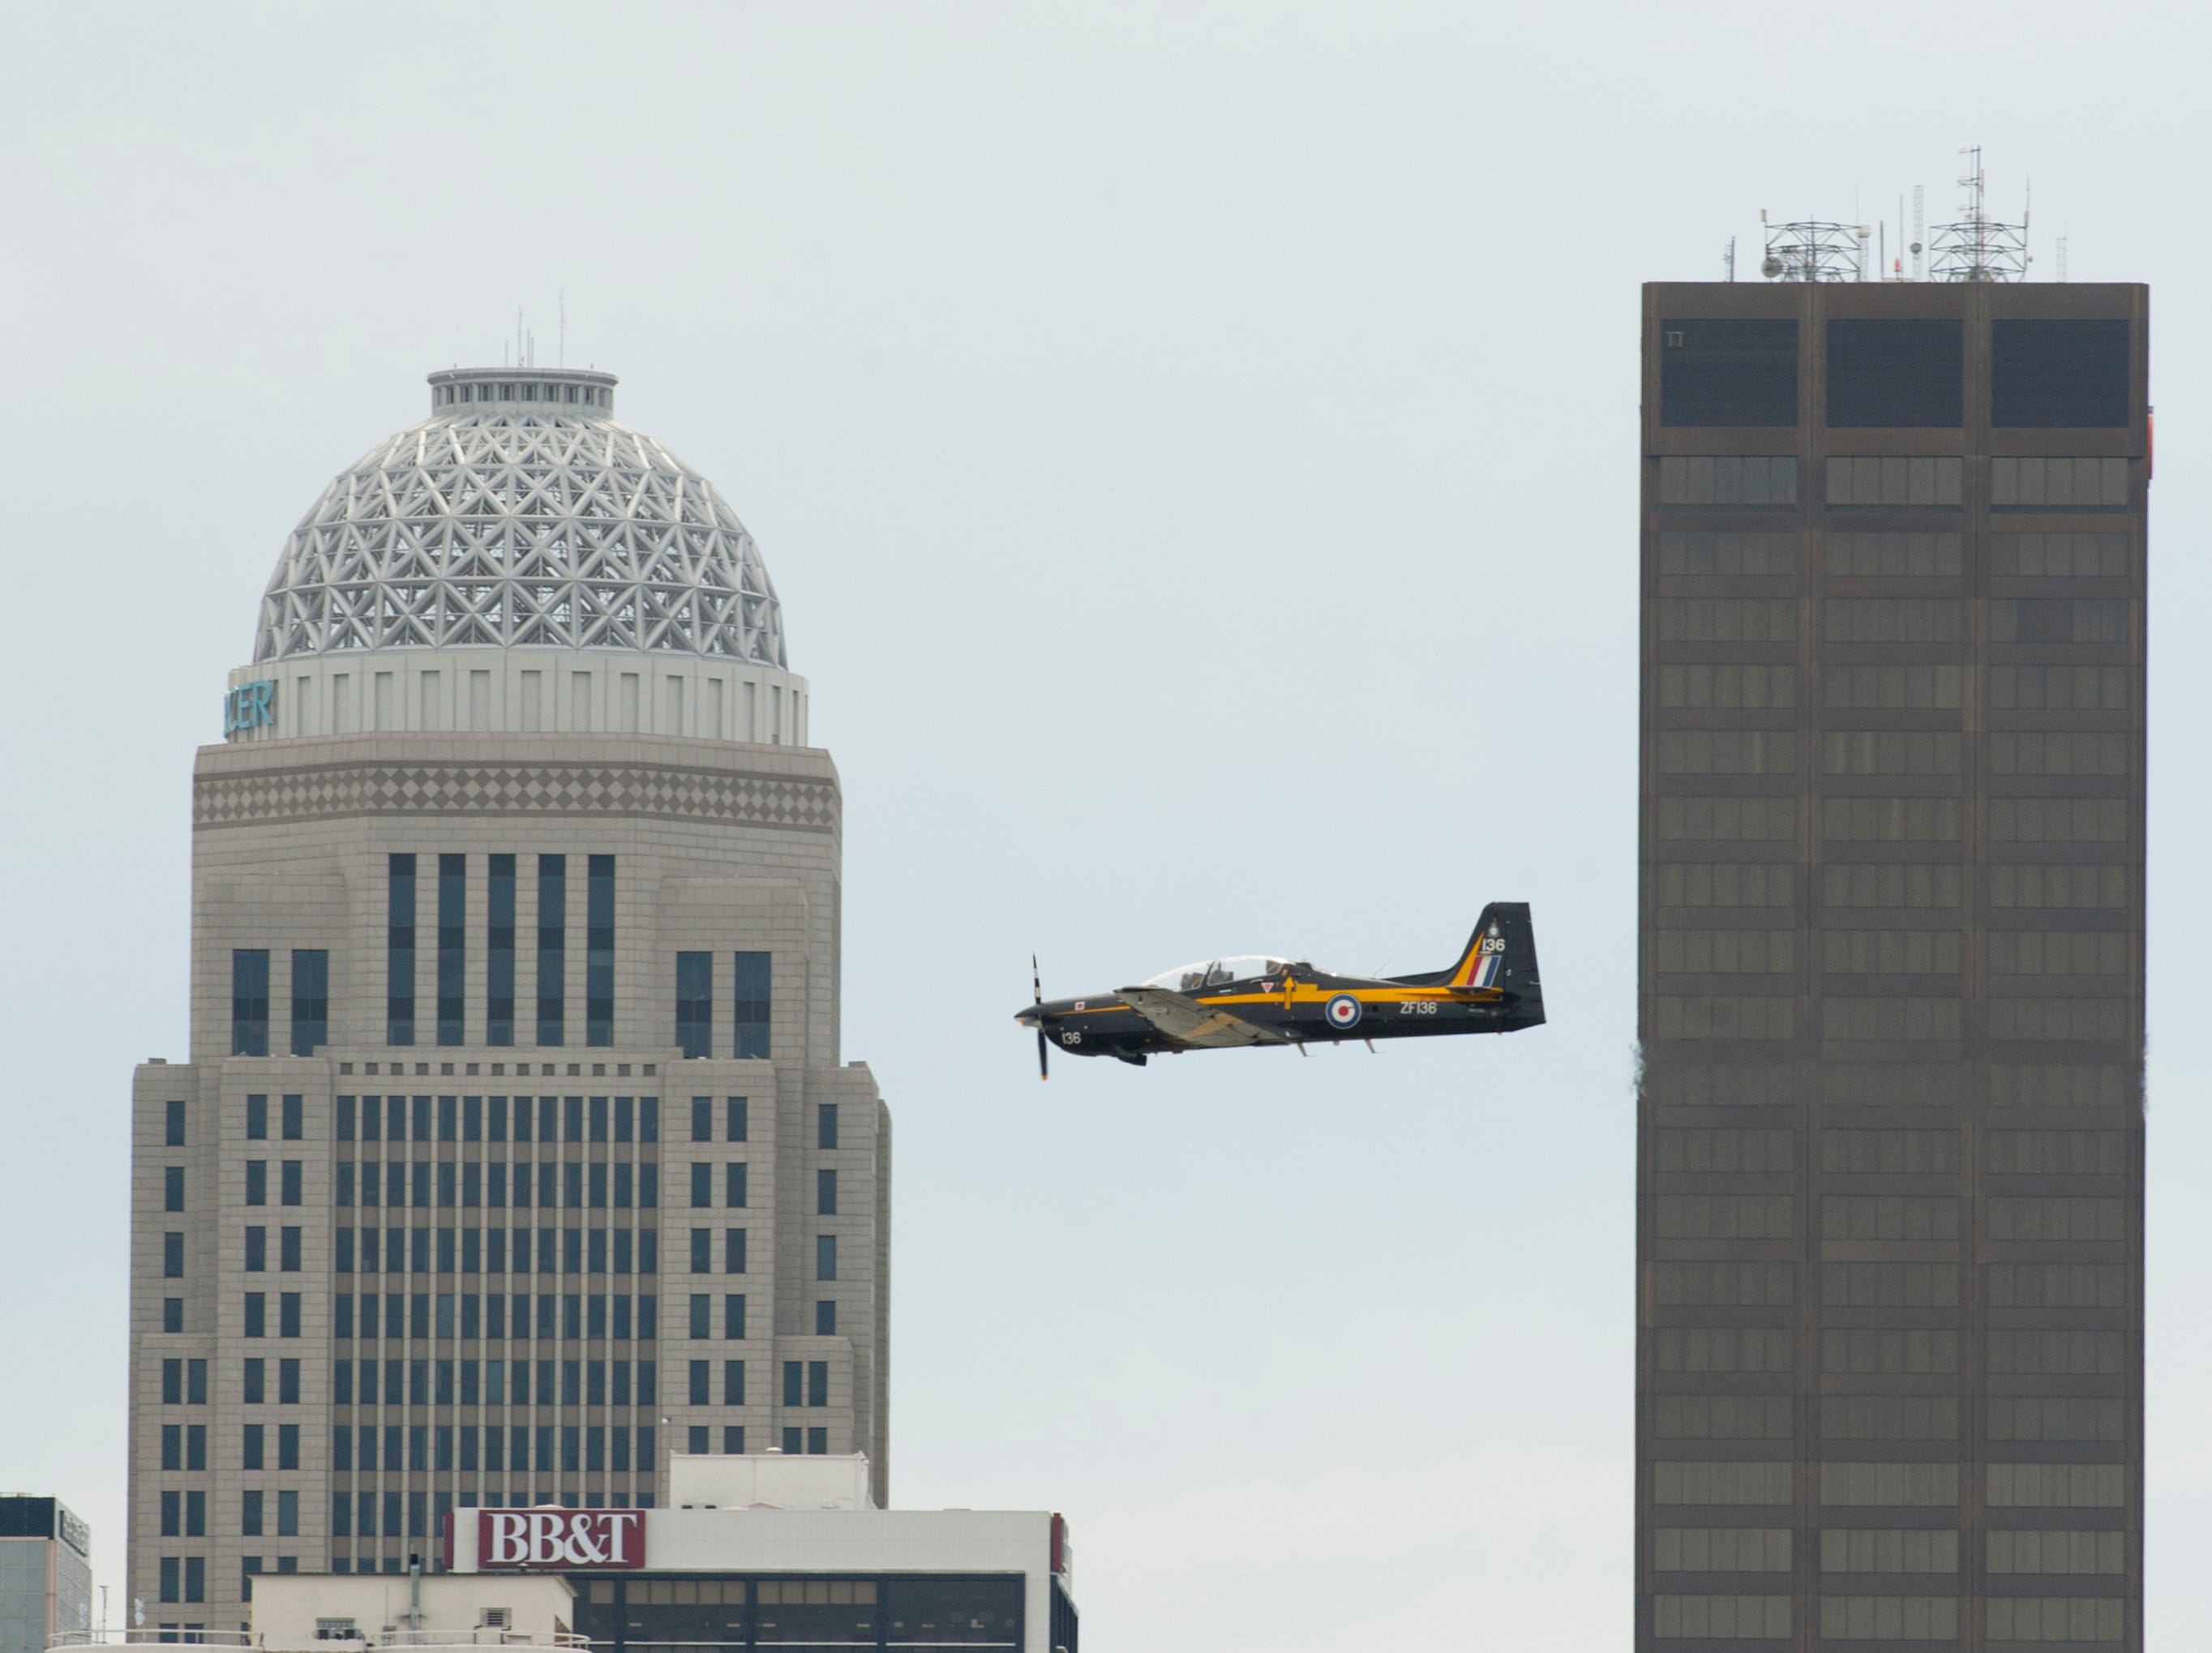 A plane flies past the Louisville downtown skyline, following the Ohio River as it practices for the airshow. 12 April 2019